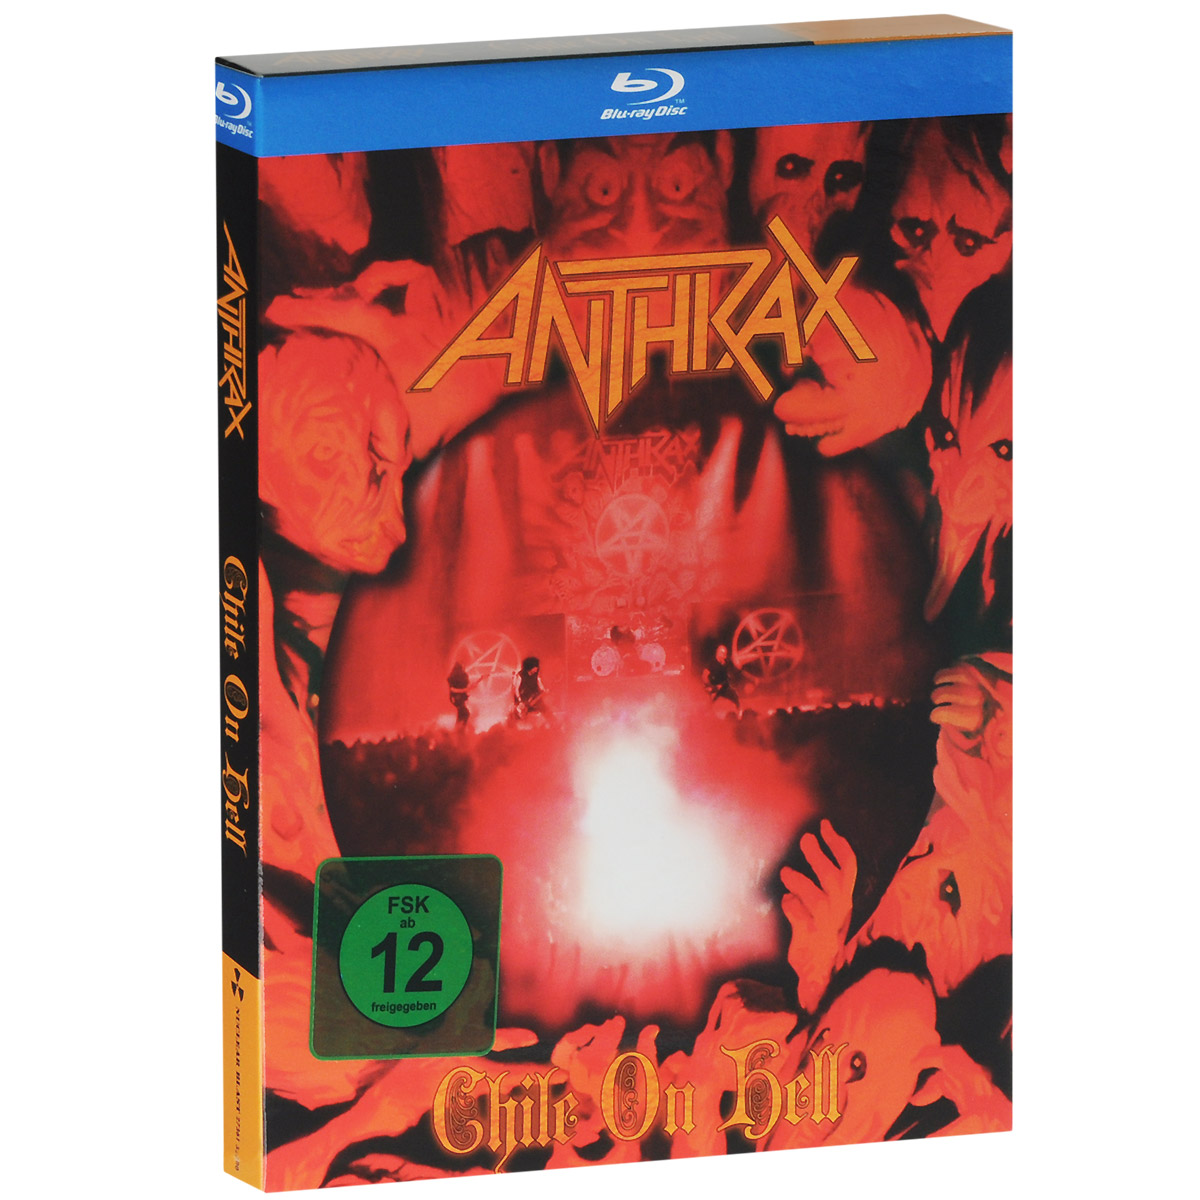 Anthrax. Chile on hell (Blu-ray + 2 CD) 2 1 blu ray